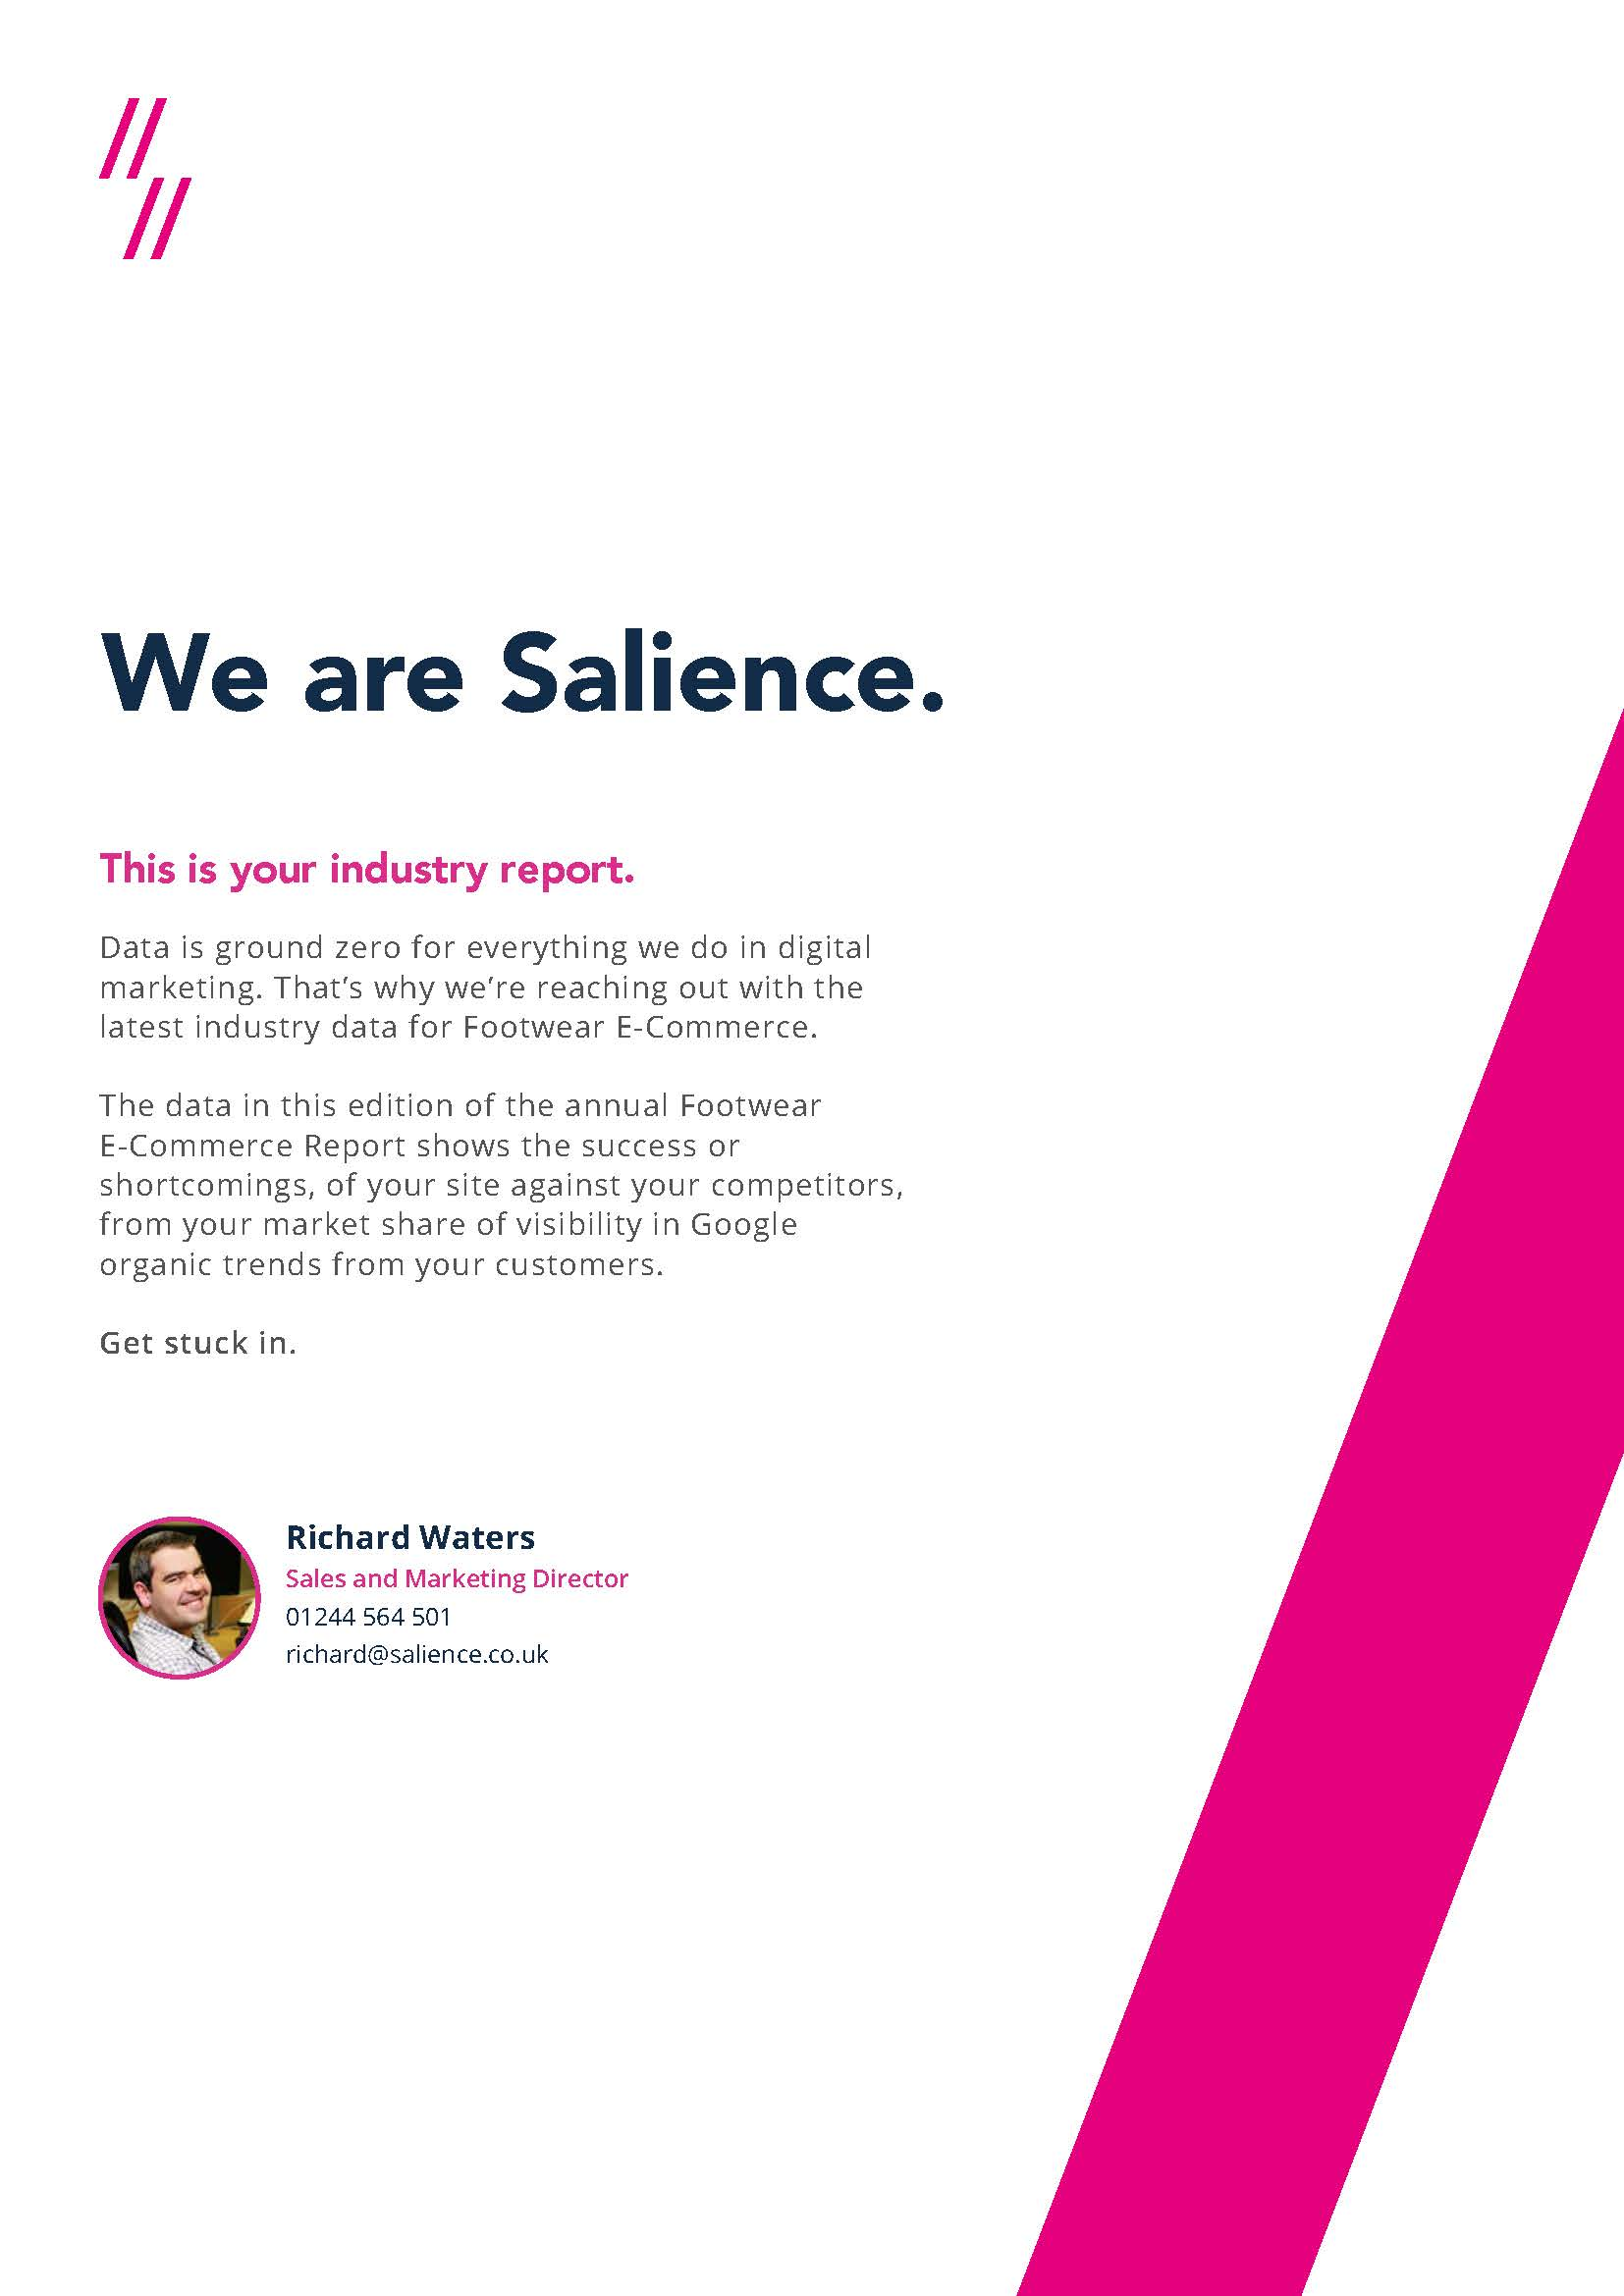 HR Services Industry Report - Salience Introduction